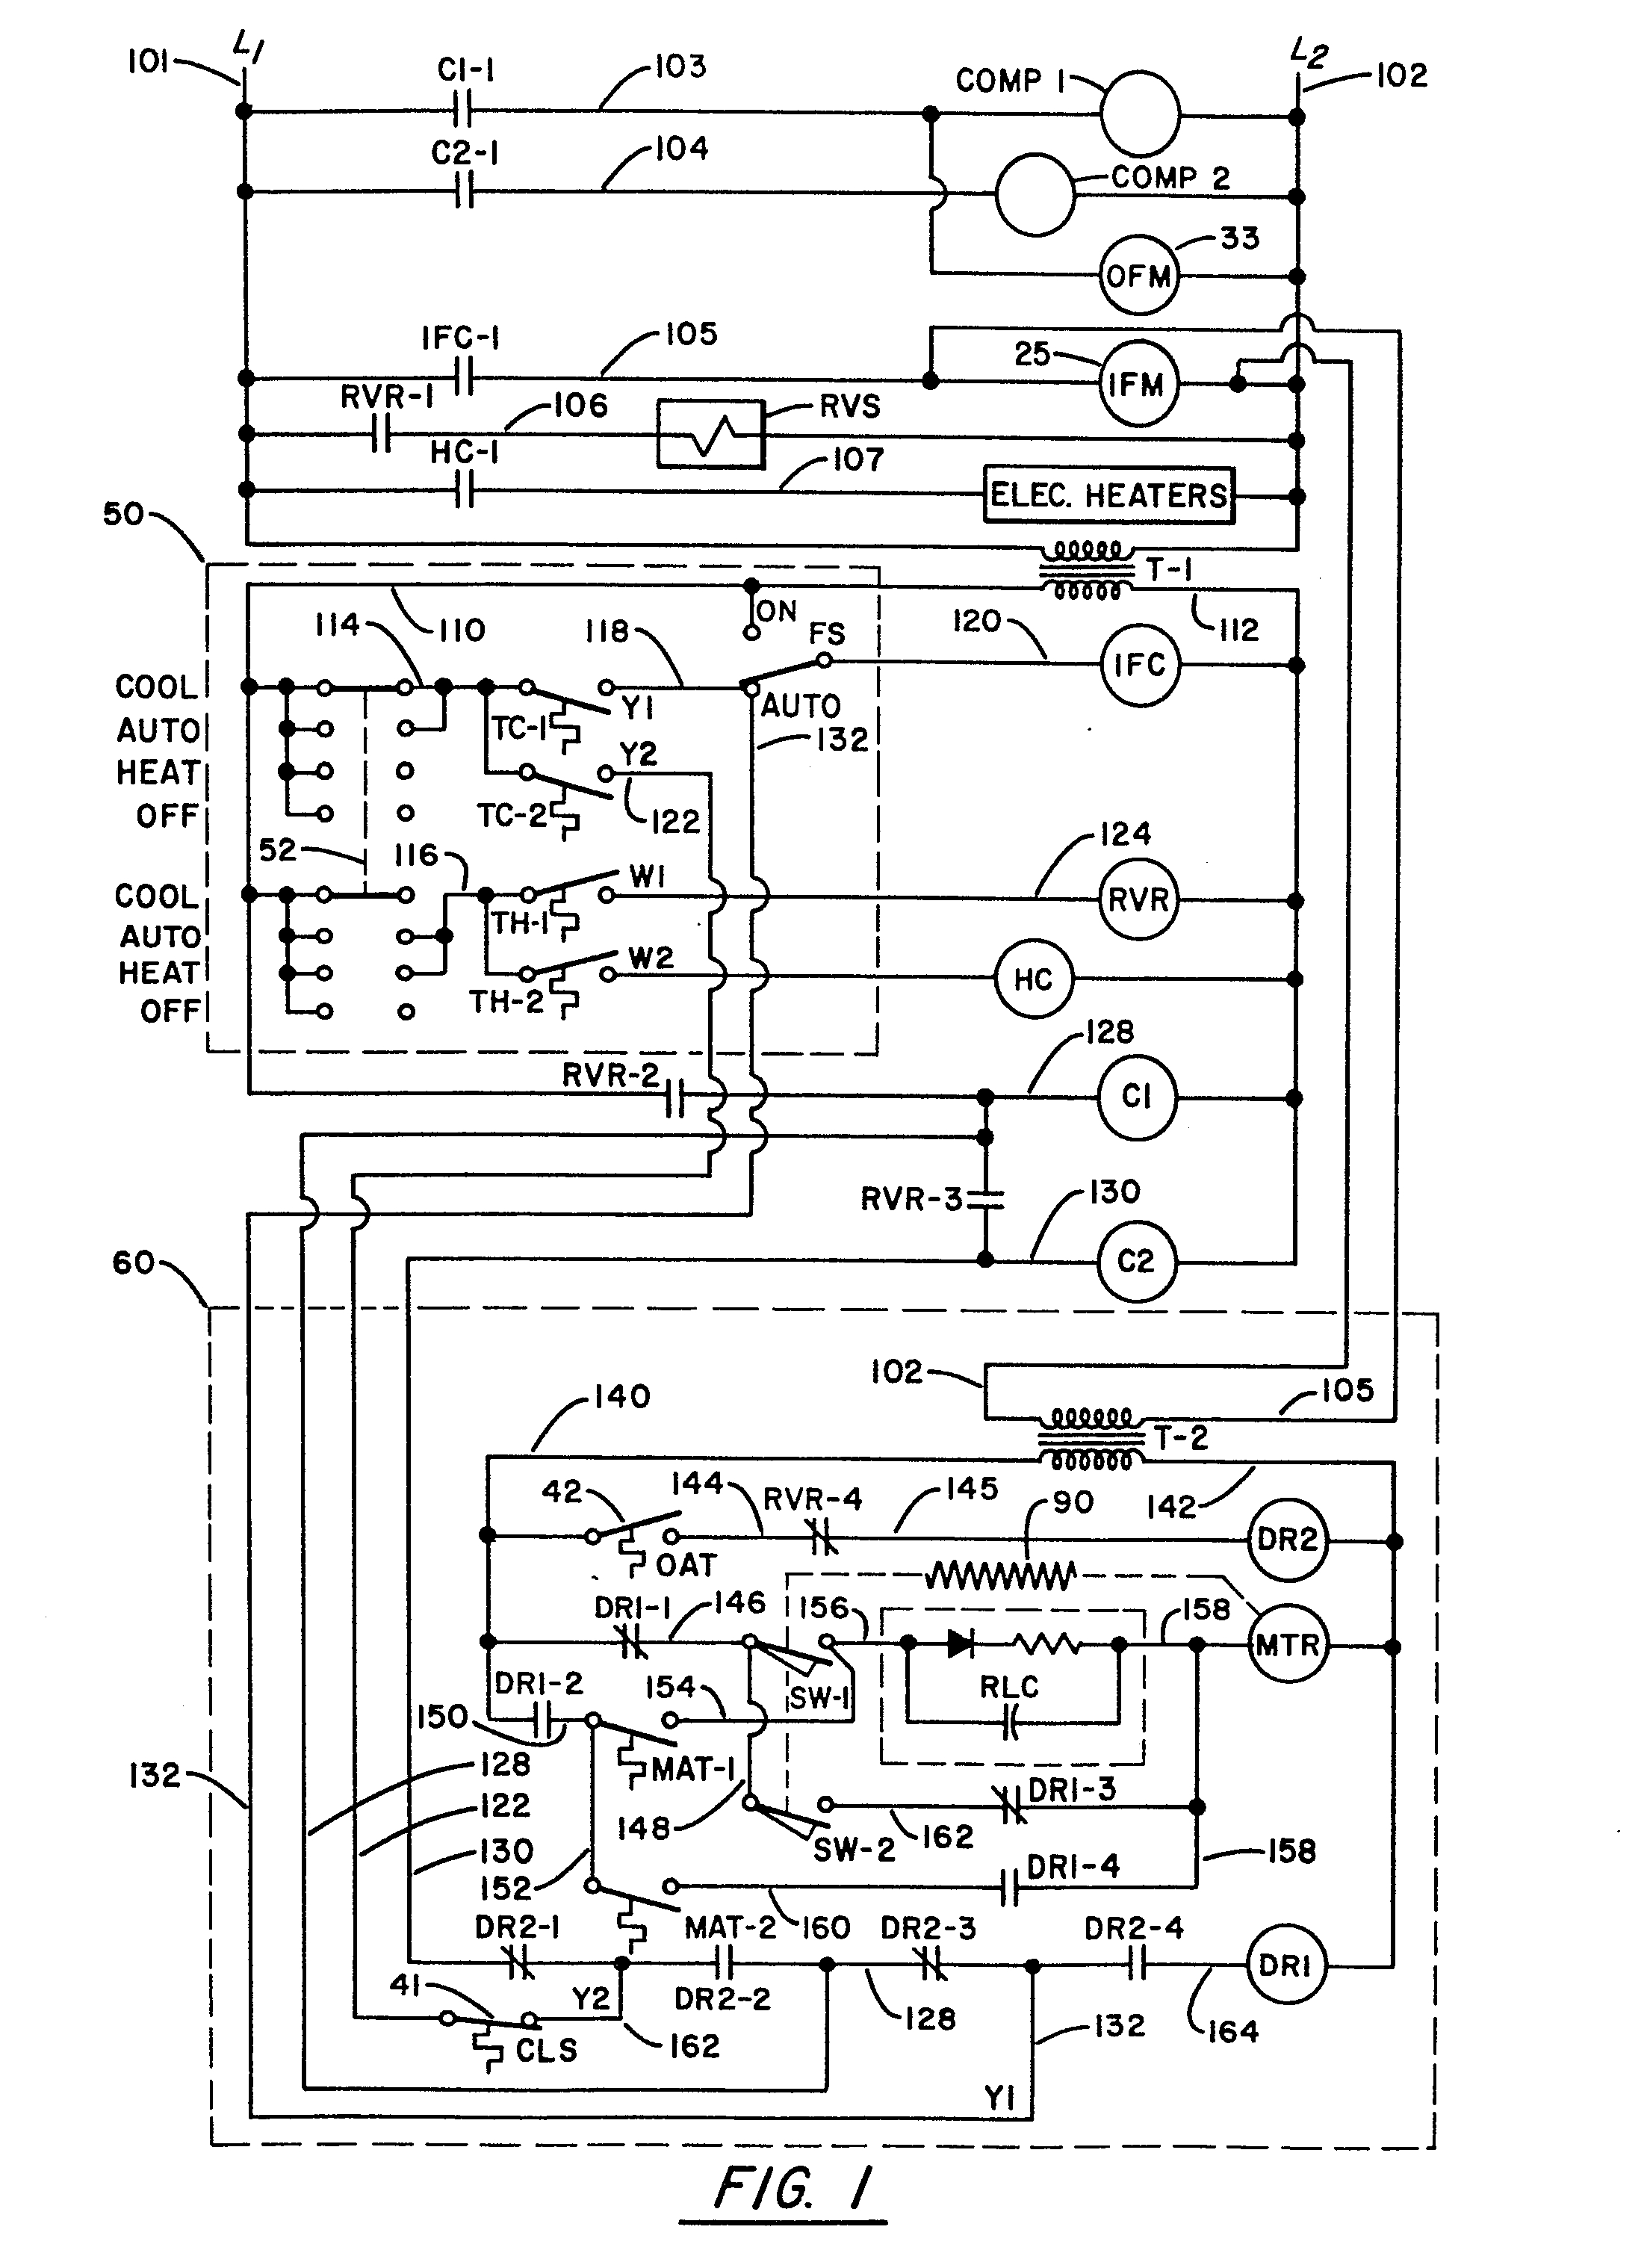 thermostat wiring diagram on carrier digital thermostat wiring